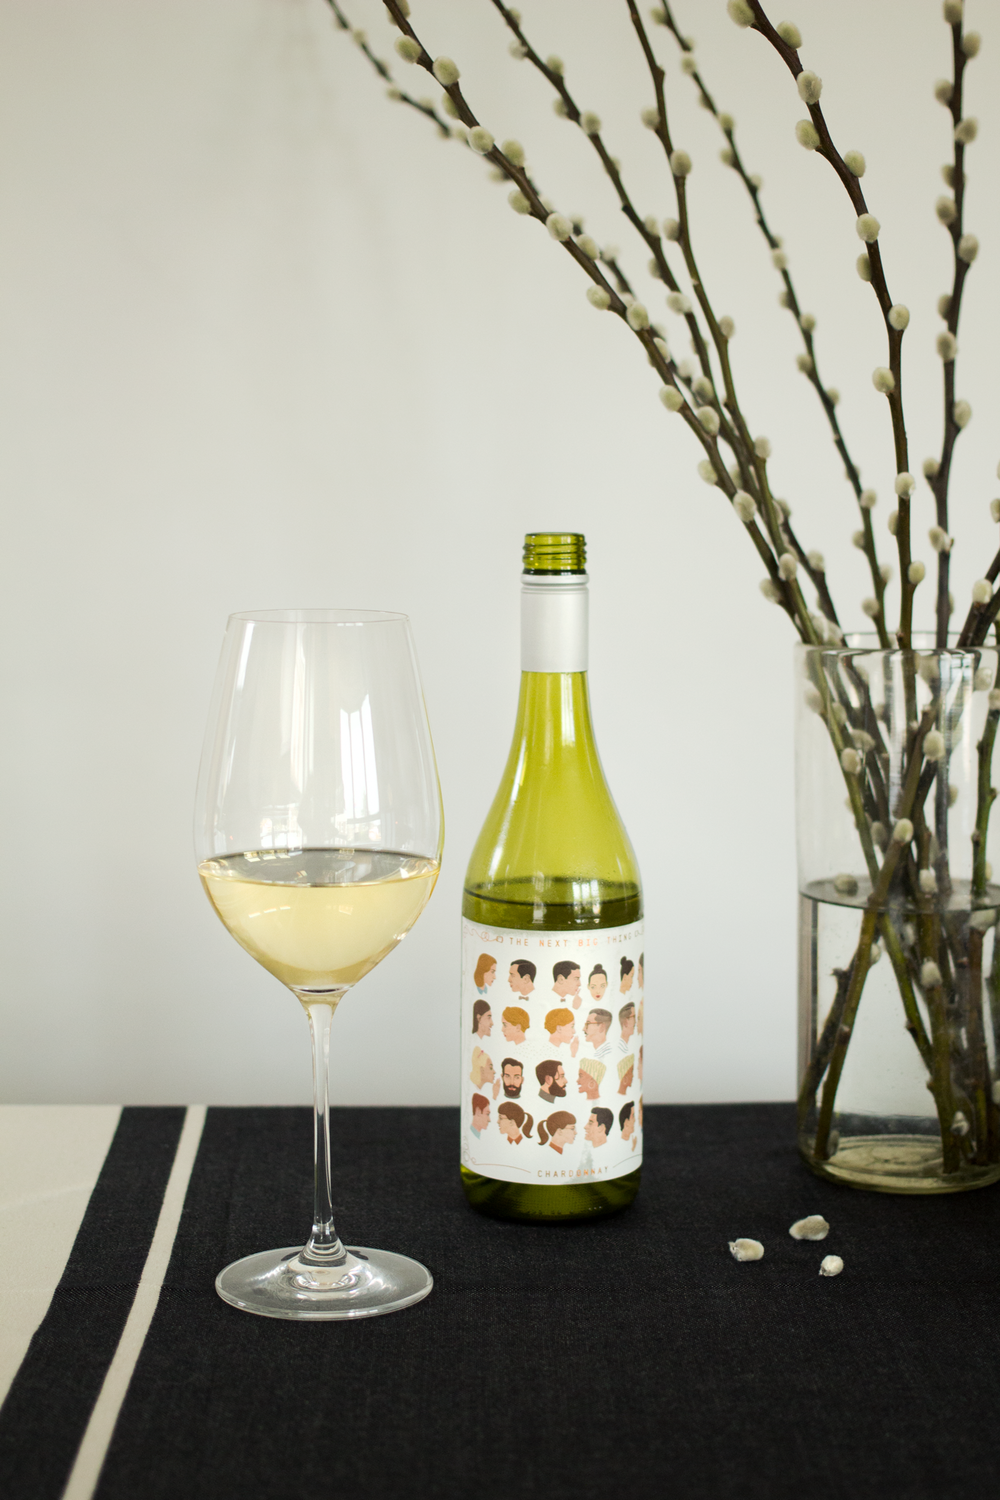 Bottle-Bitches-of-Review-Magpie-Estate-The-Next-Big-Thing-Chardonnay-Australian-Wine-Review.png